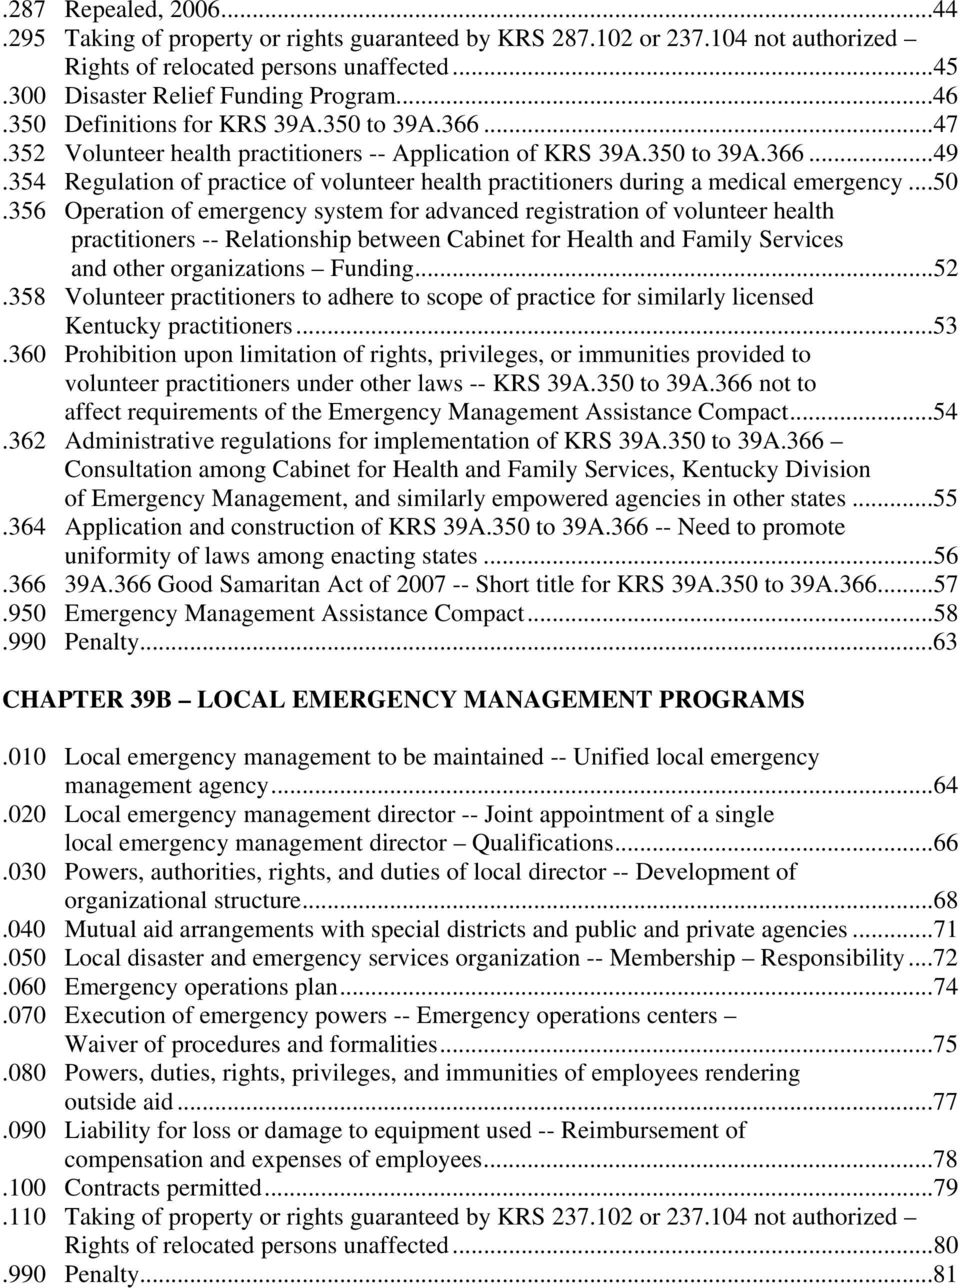 354 Regulation of practice of volunteer health practitioners during a medical emergency...50.